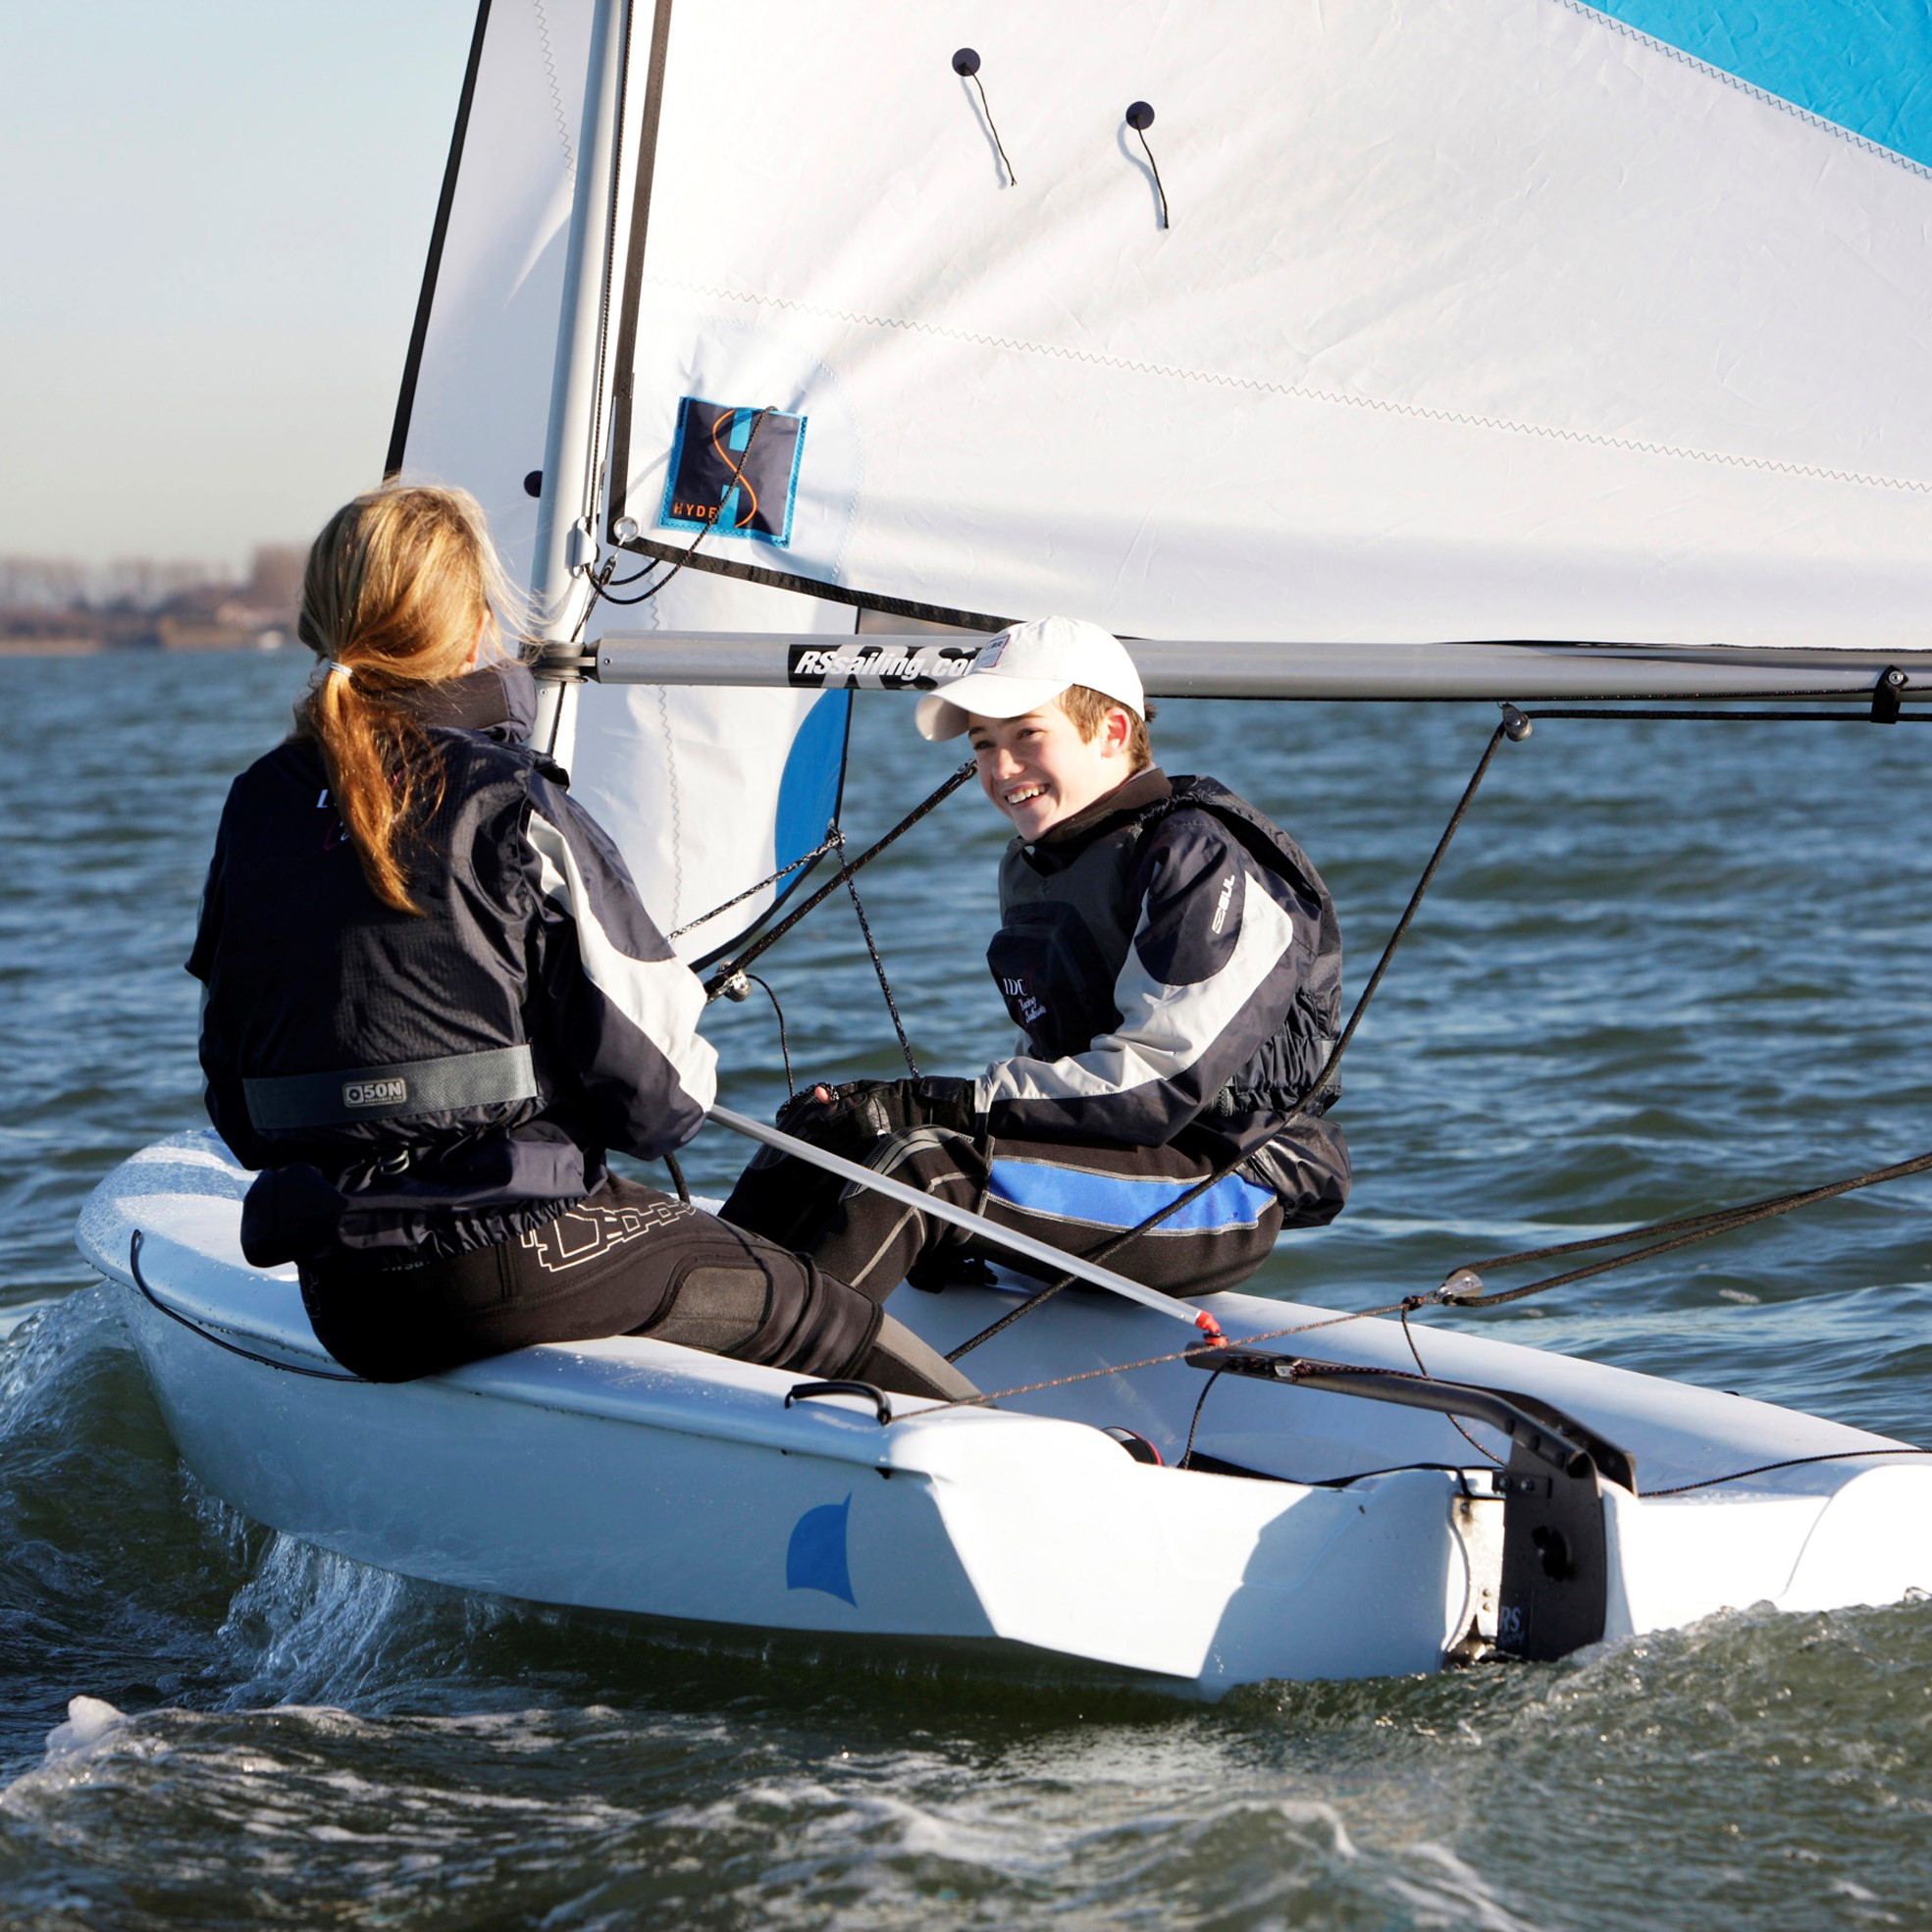 RS Quba is a one or two man monohull dinghy in the RS Sailing range of sailing boats. It is a popular boat for beginners.